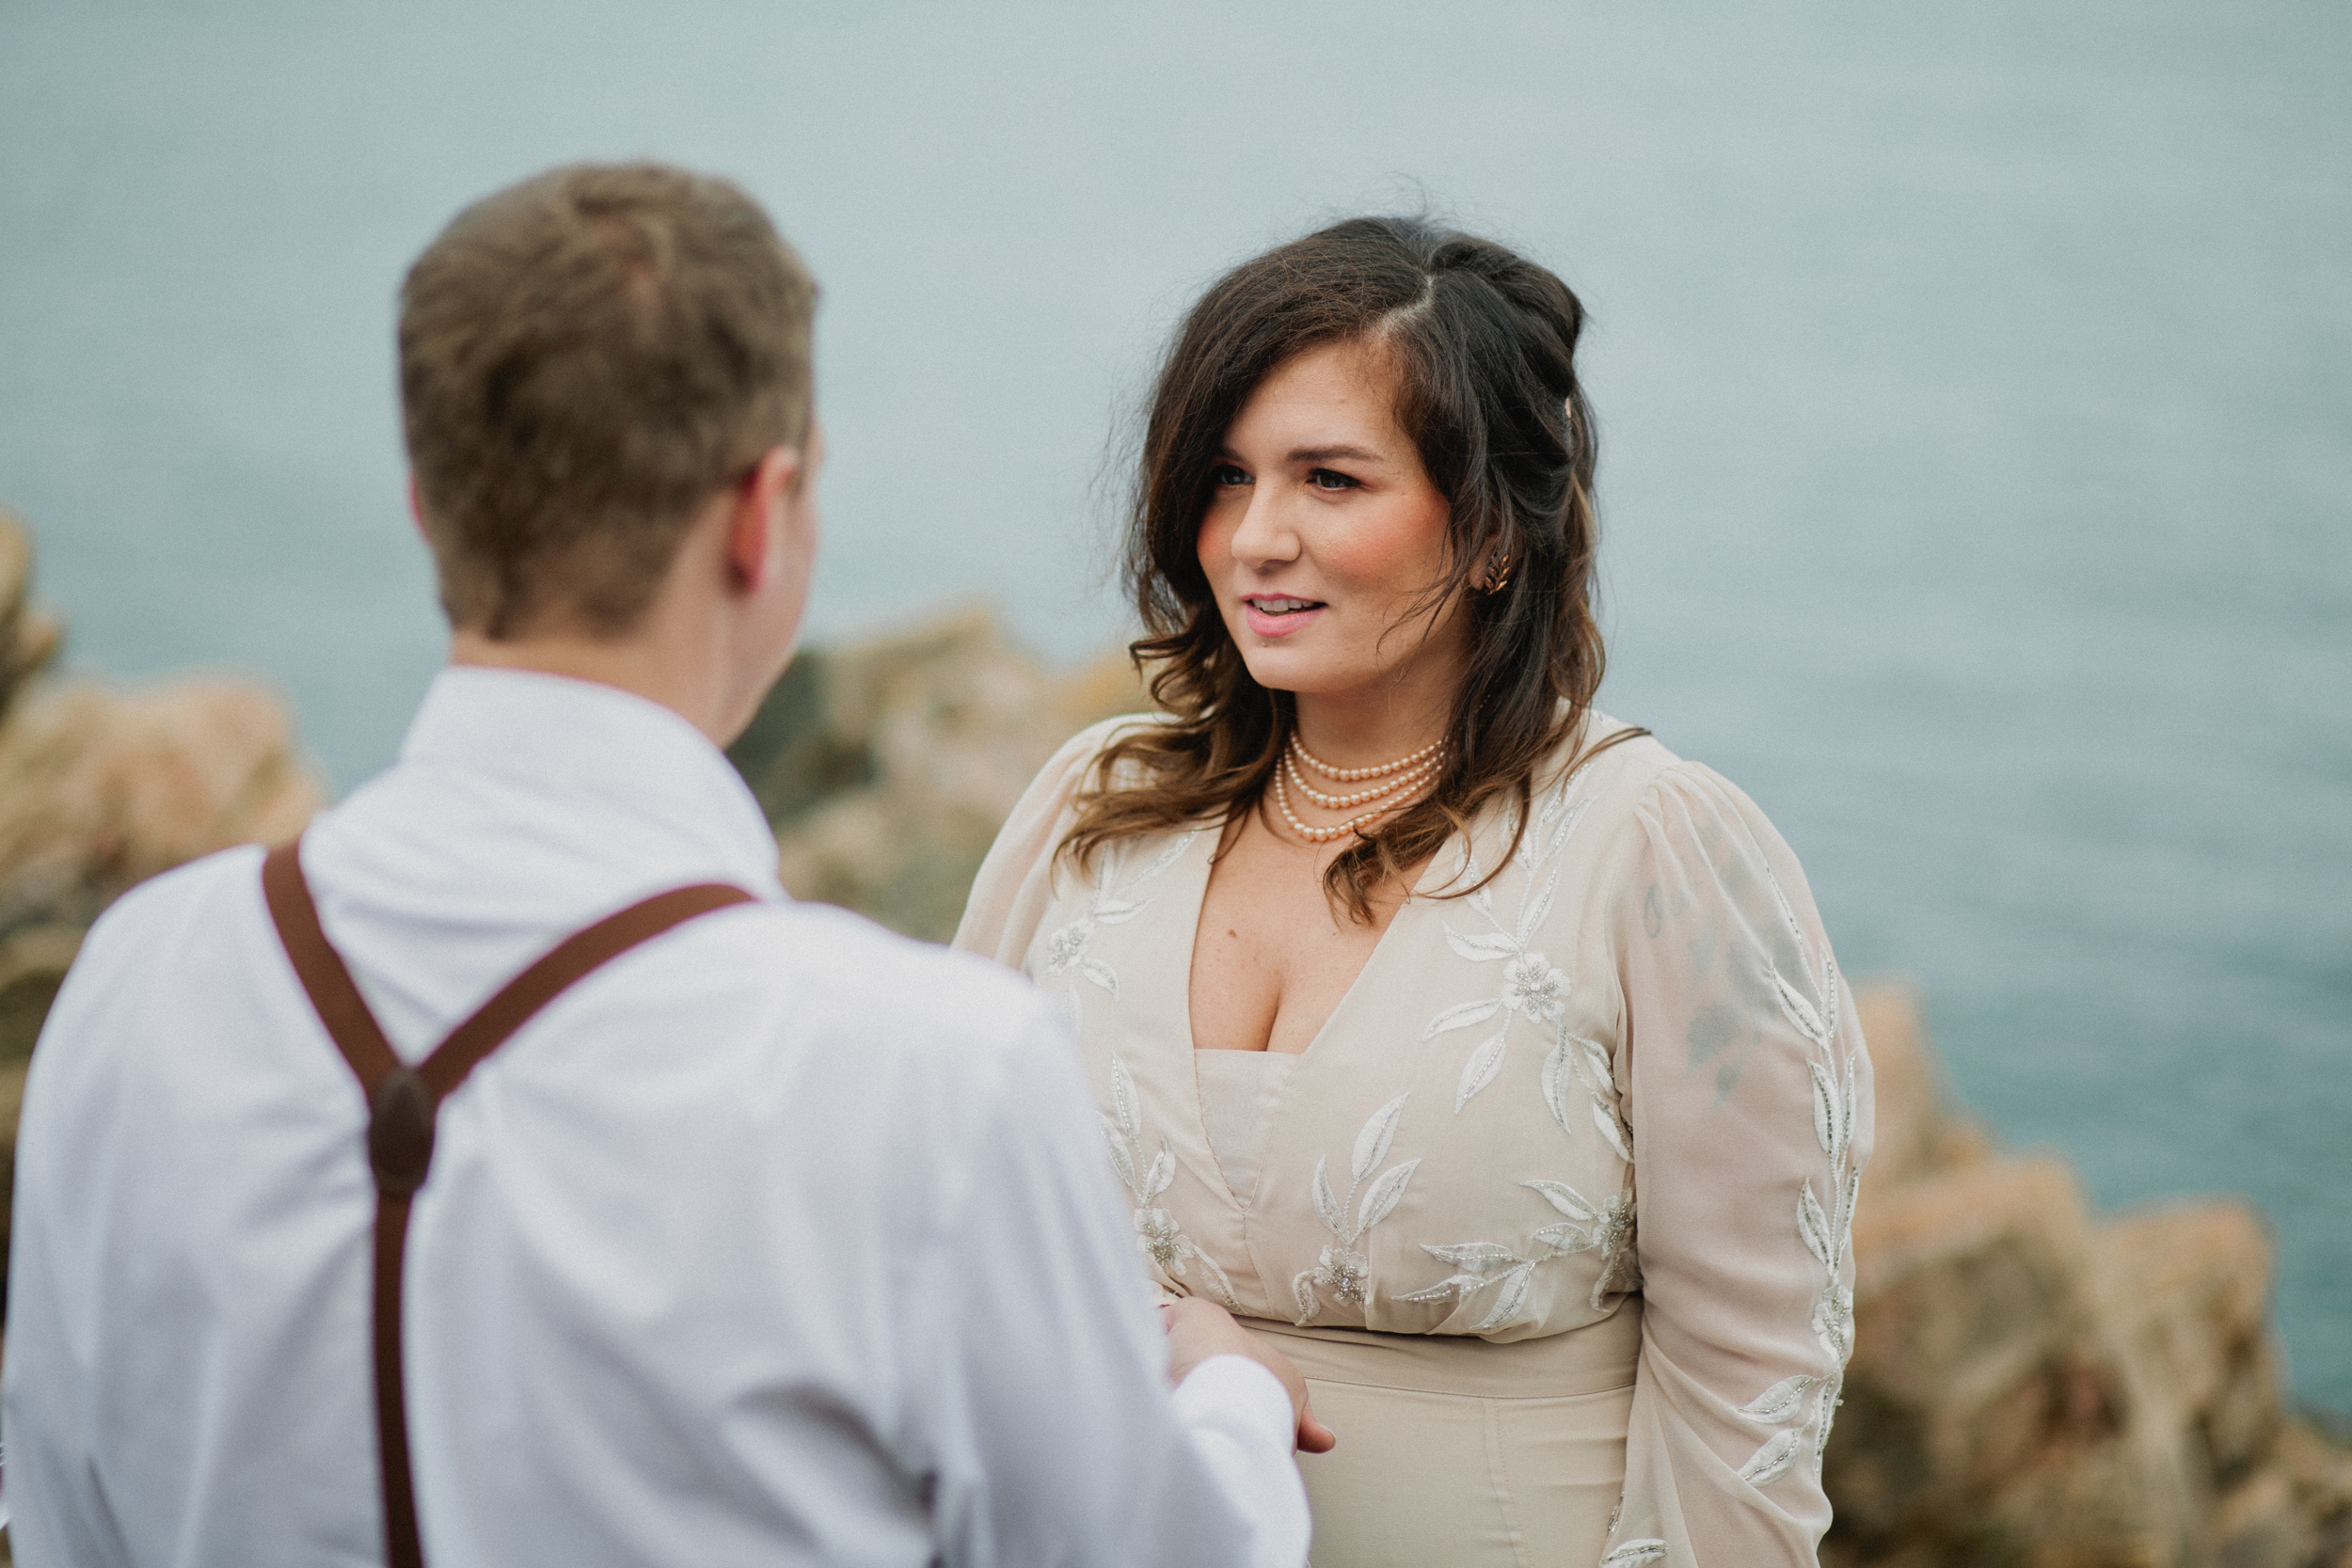 Acadia-Elopement-Photos-334.jpg